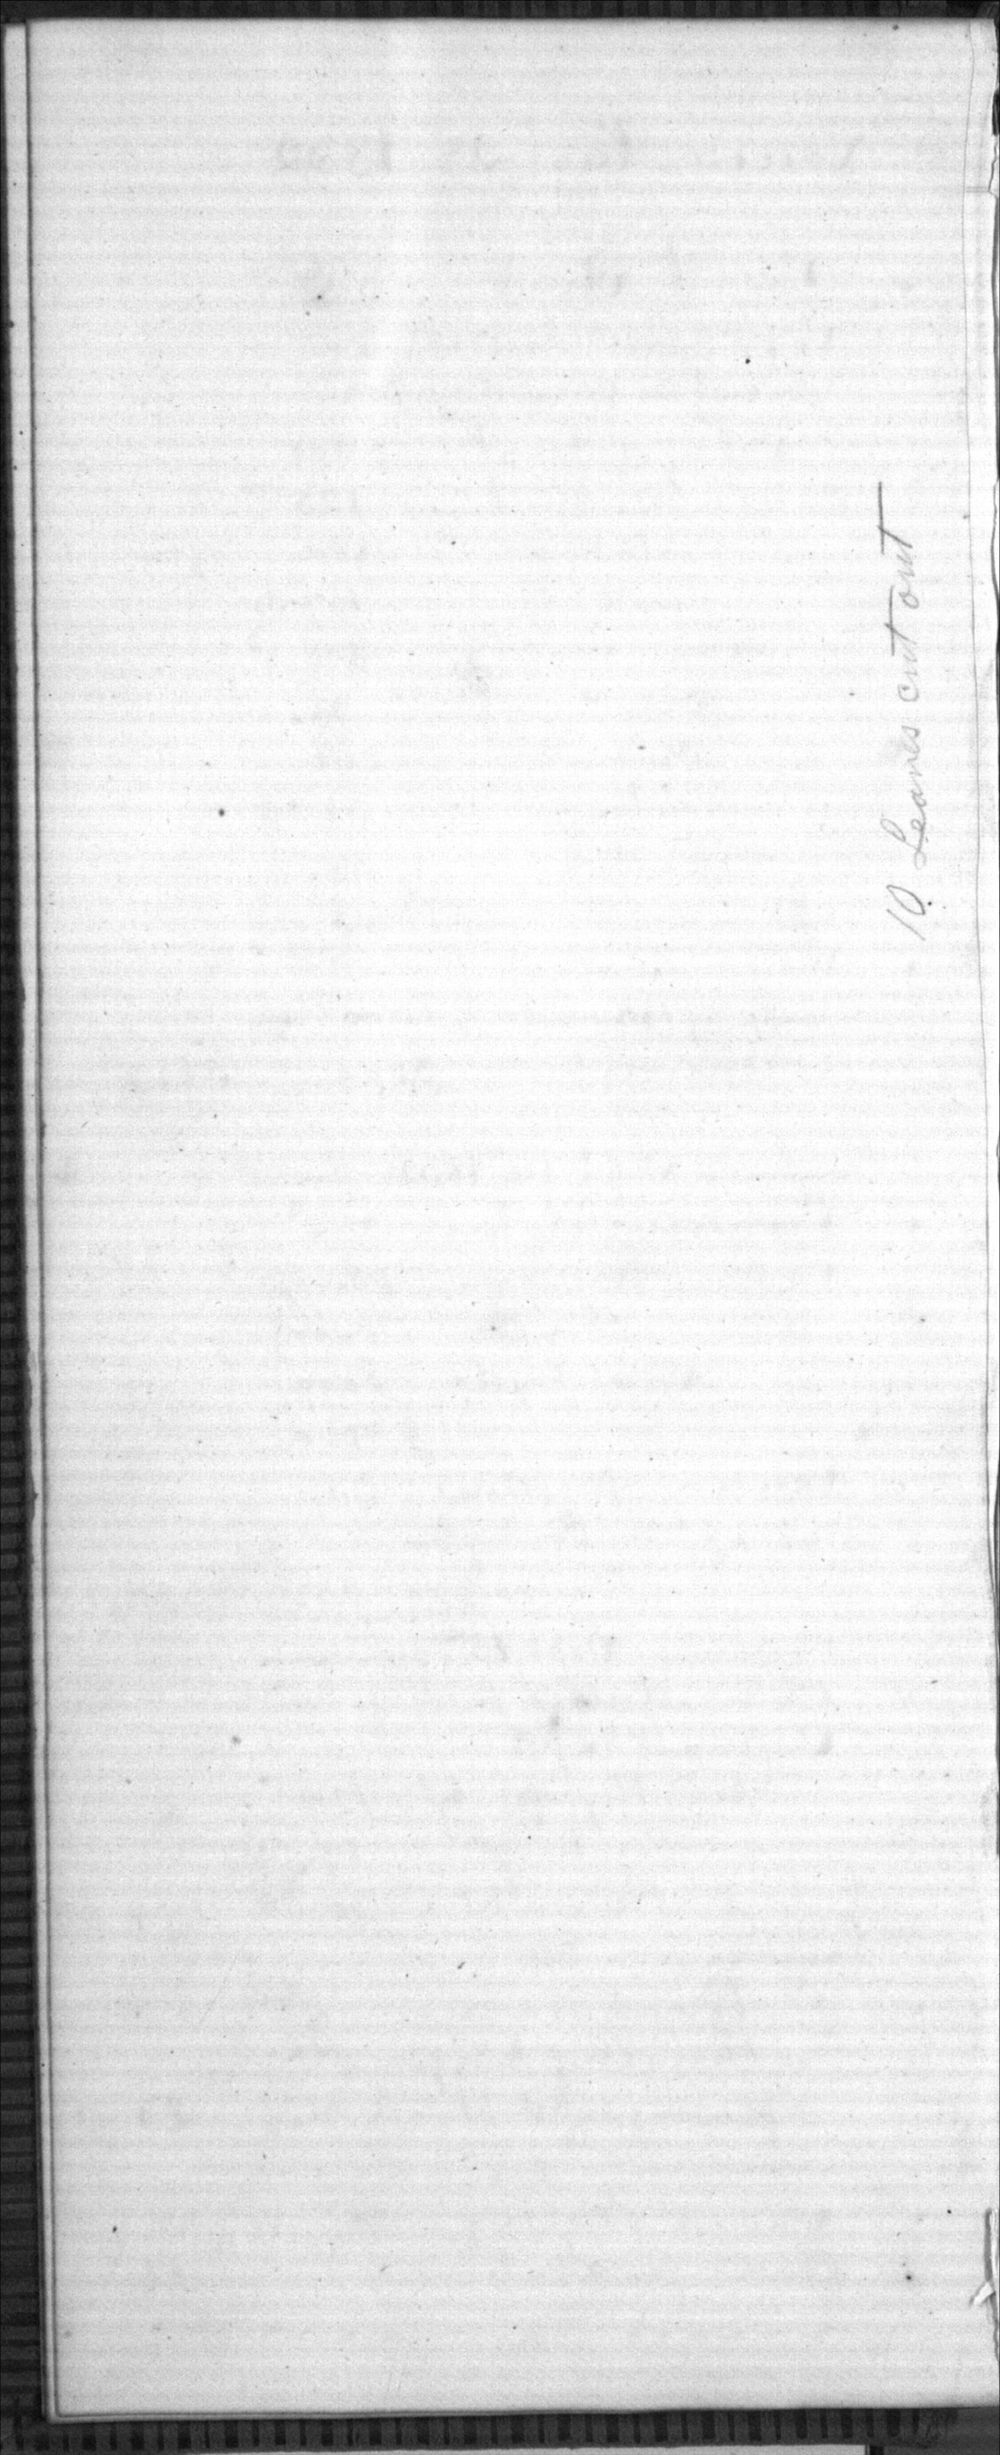 United States Office of Indian Affairs, Central Superintendency, St. Louis, Missouri. Volume 10, Daybook - no page number